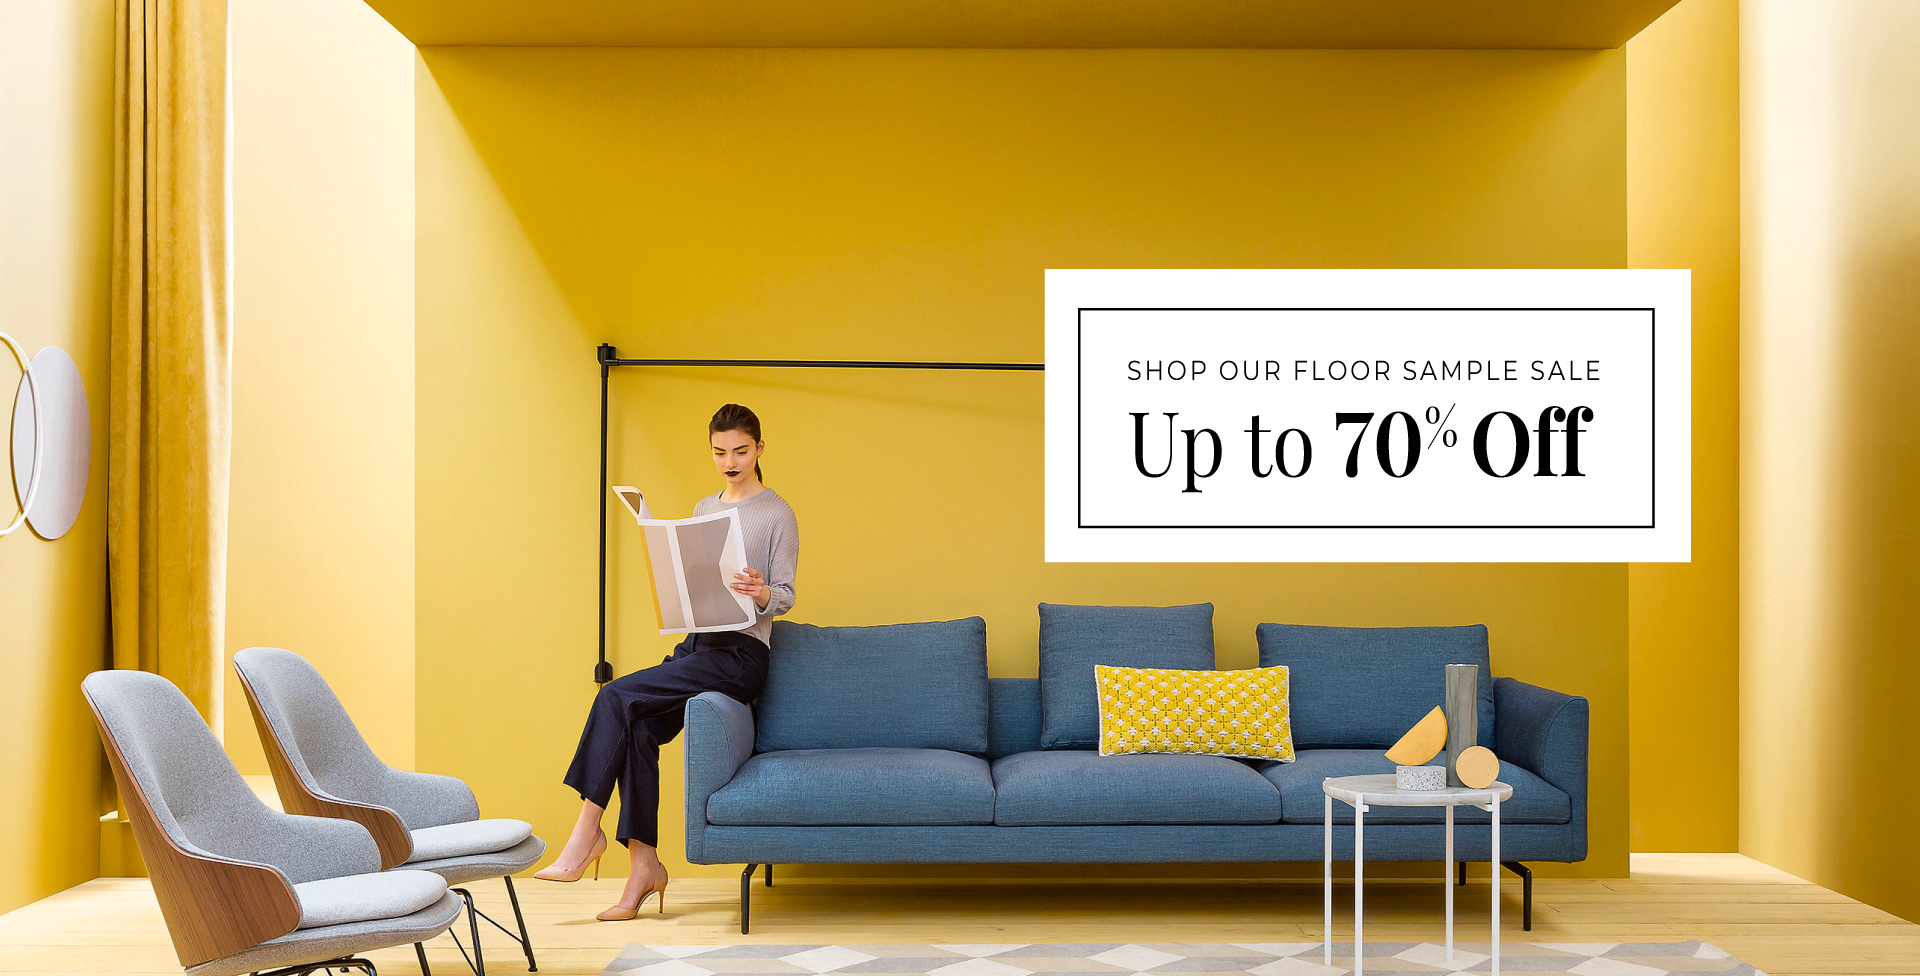 Shop Our Floor Samples Sale - Up to 70% Off